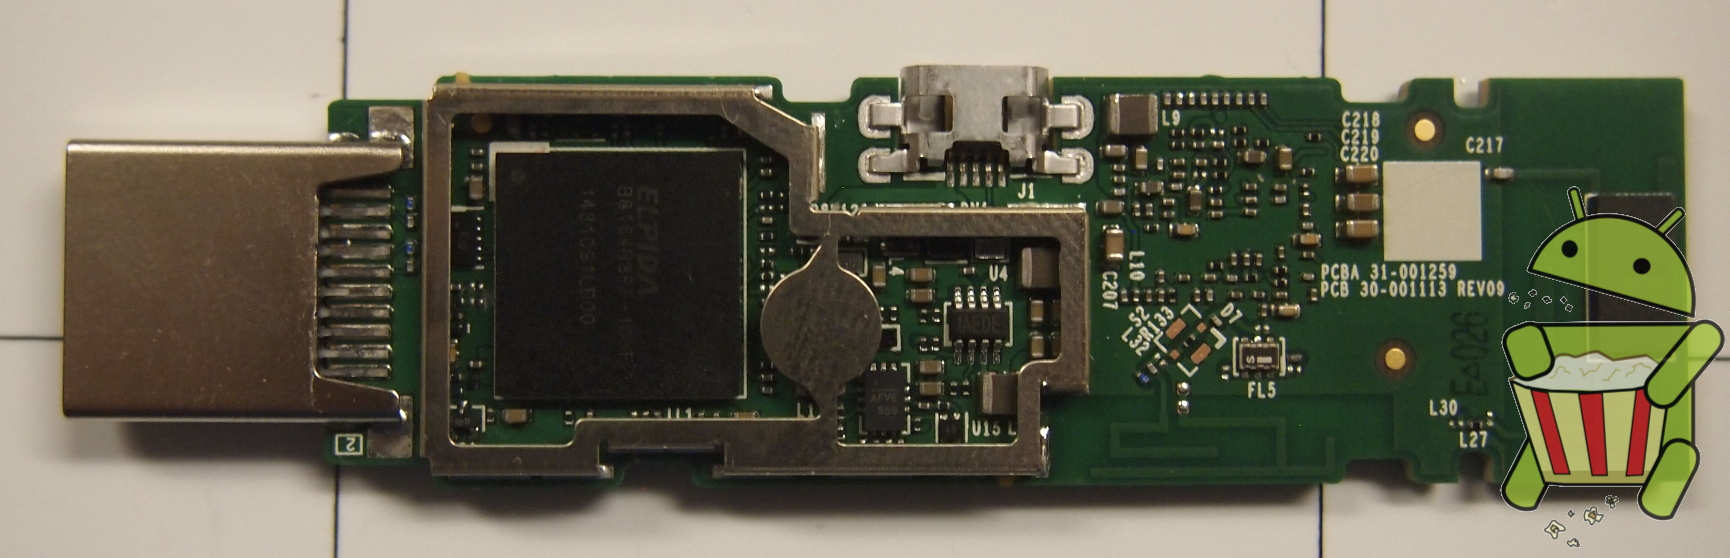 Amazon Fire TV Stick Board Top Pads Removed Heatshield Removed No Pads.JPG